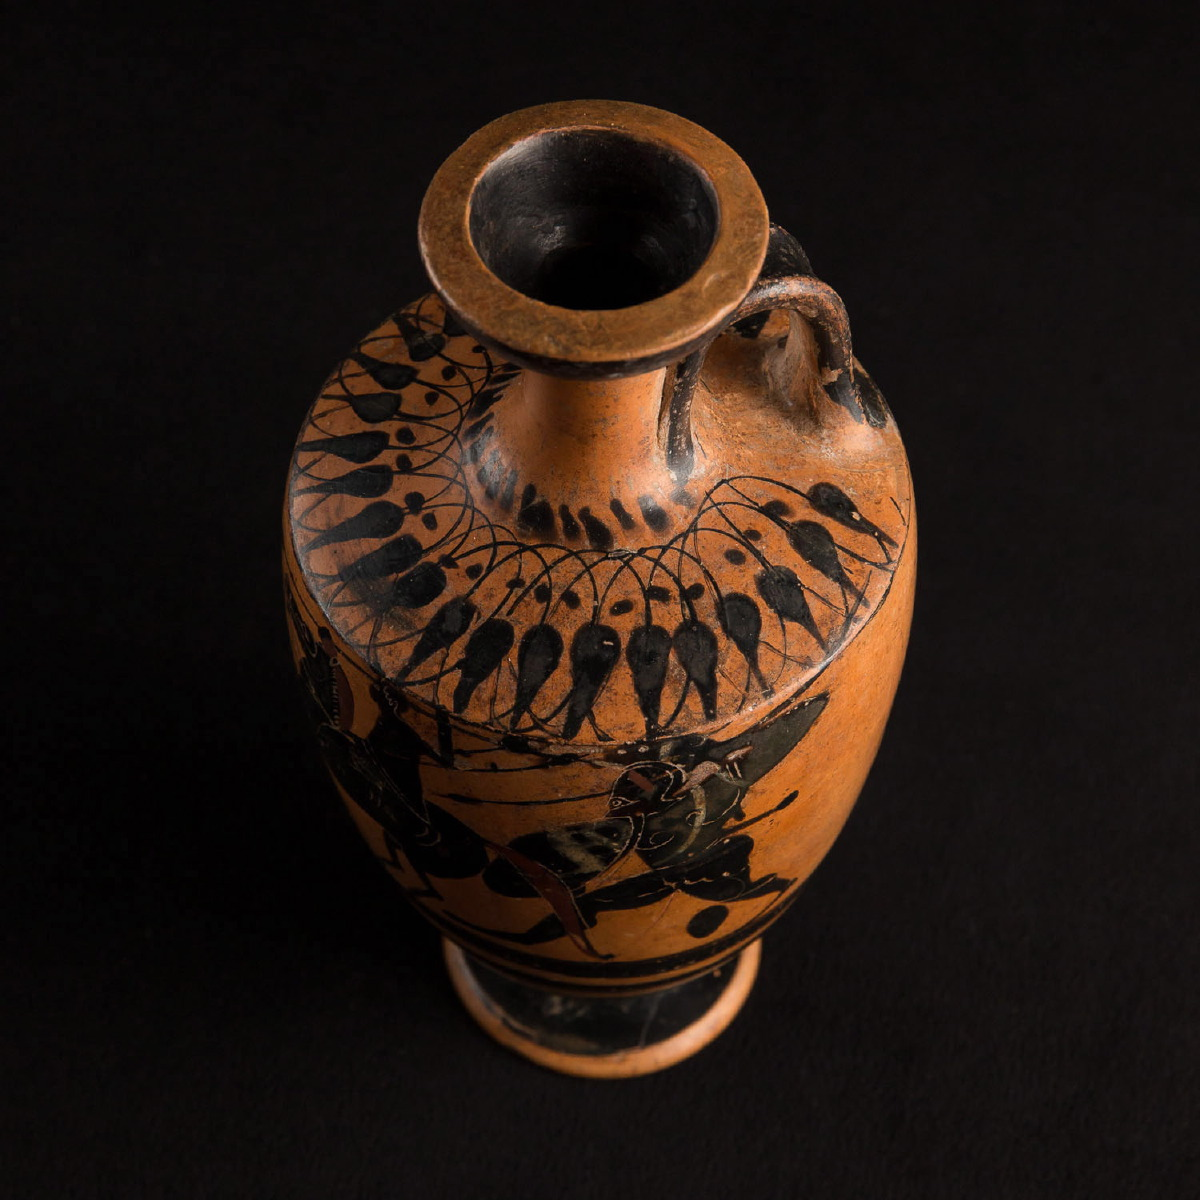 Photo of ancient-civilisation-ancient-greece-mediterranean-red-and-black-ware-vessel-greek-galerie-golconda-museum-quality-artefacts-from-ancient-civilisations